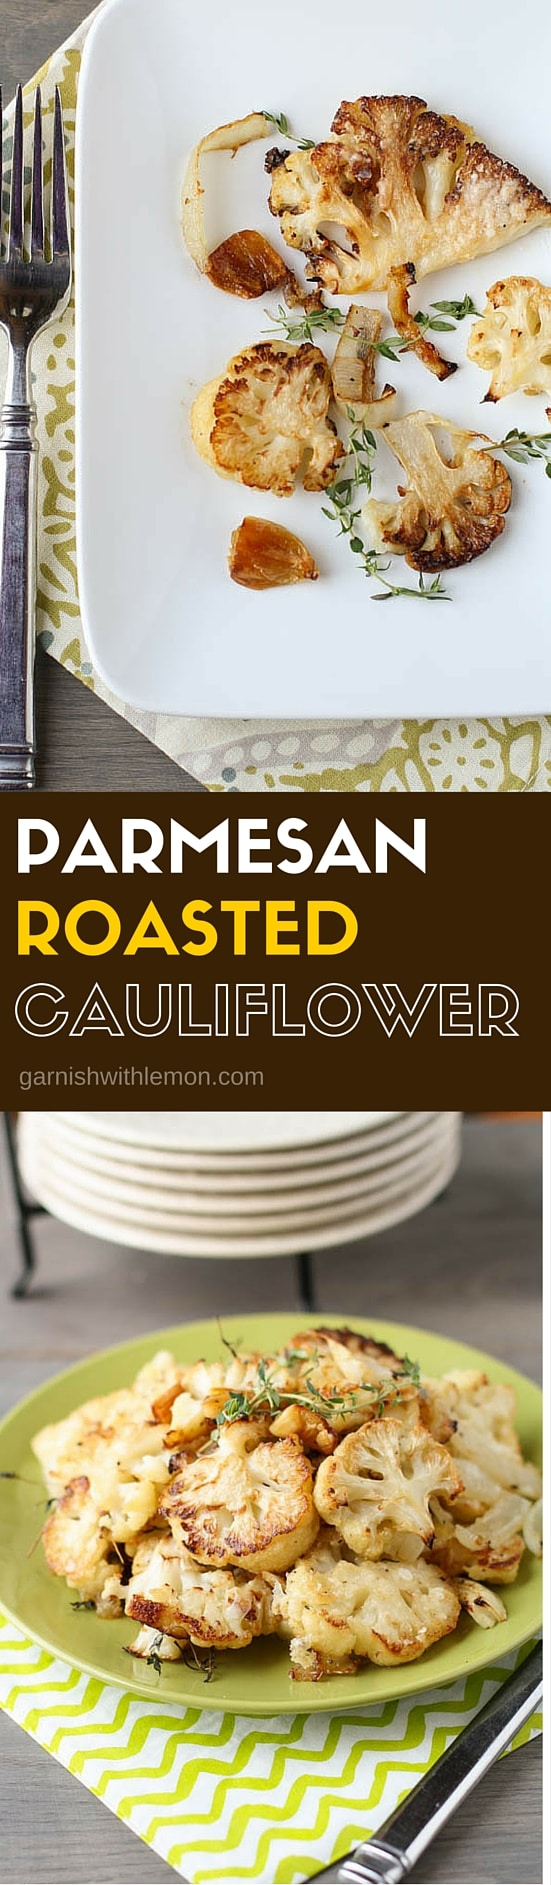 Do not miss this super-delicious & SUPER EASY side dish! Parmesan Roasted Cauliflower is filled with the flavors of fresh thyme, caramelized onion & garlic.